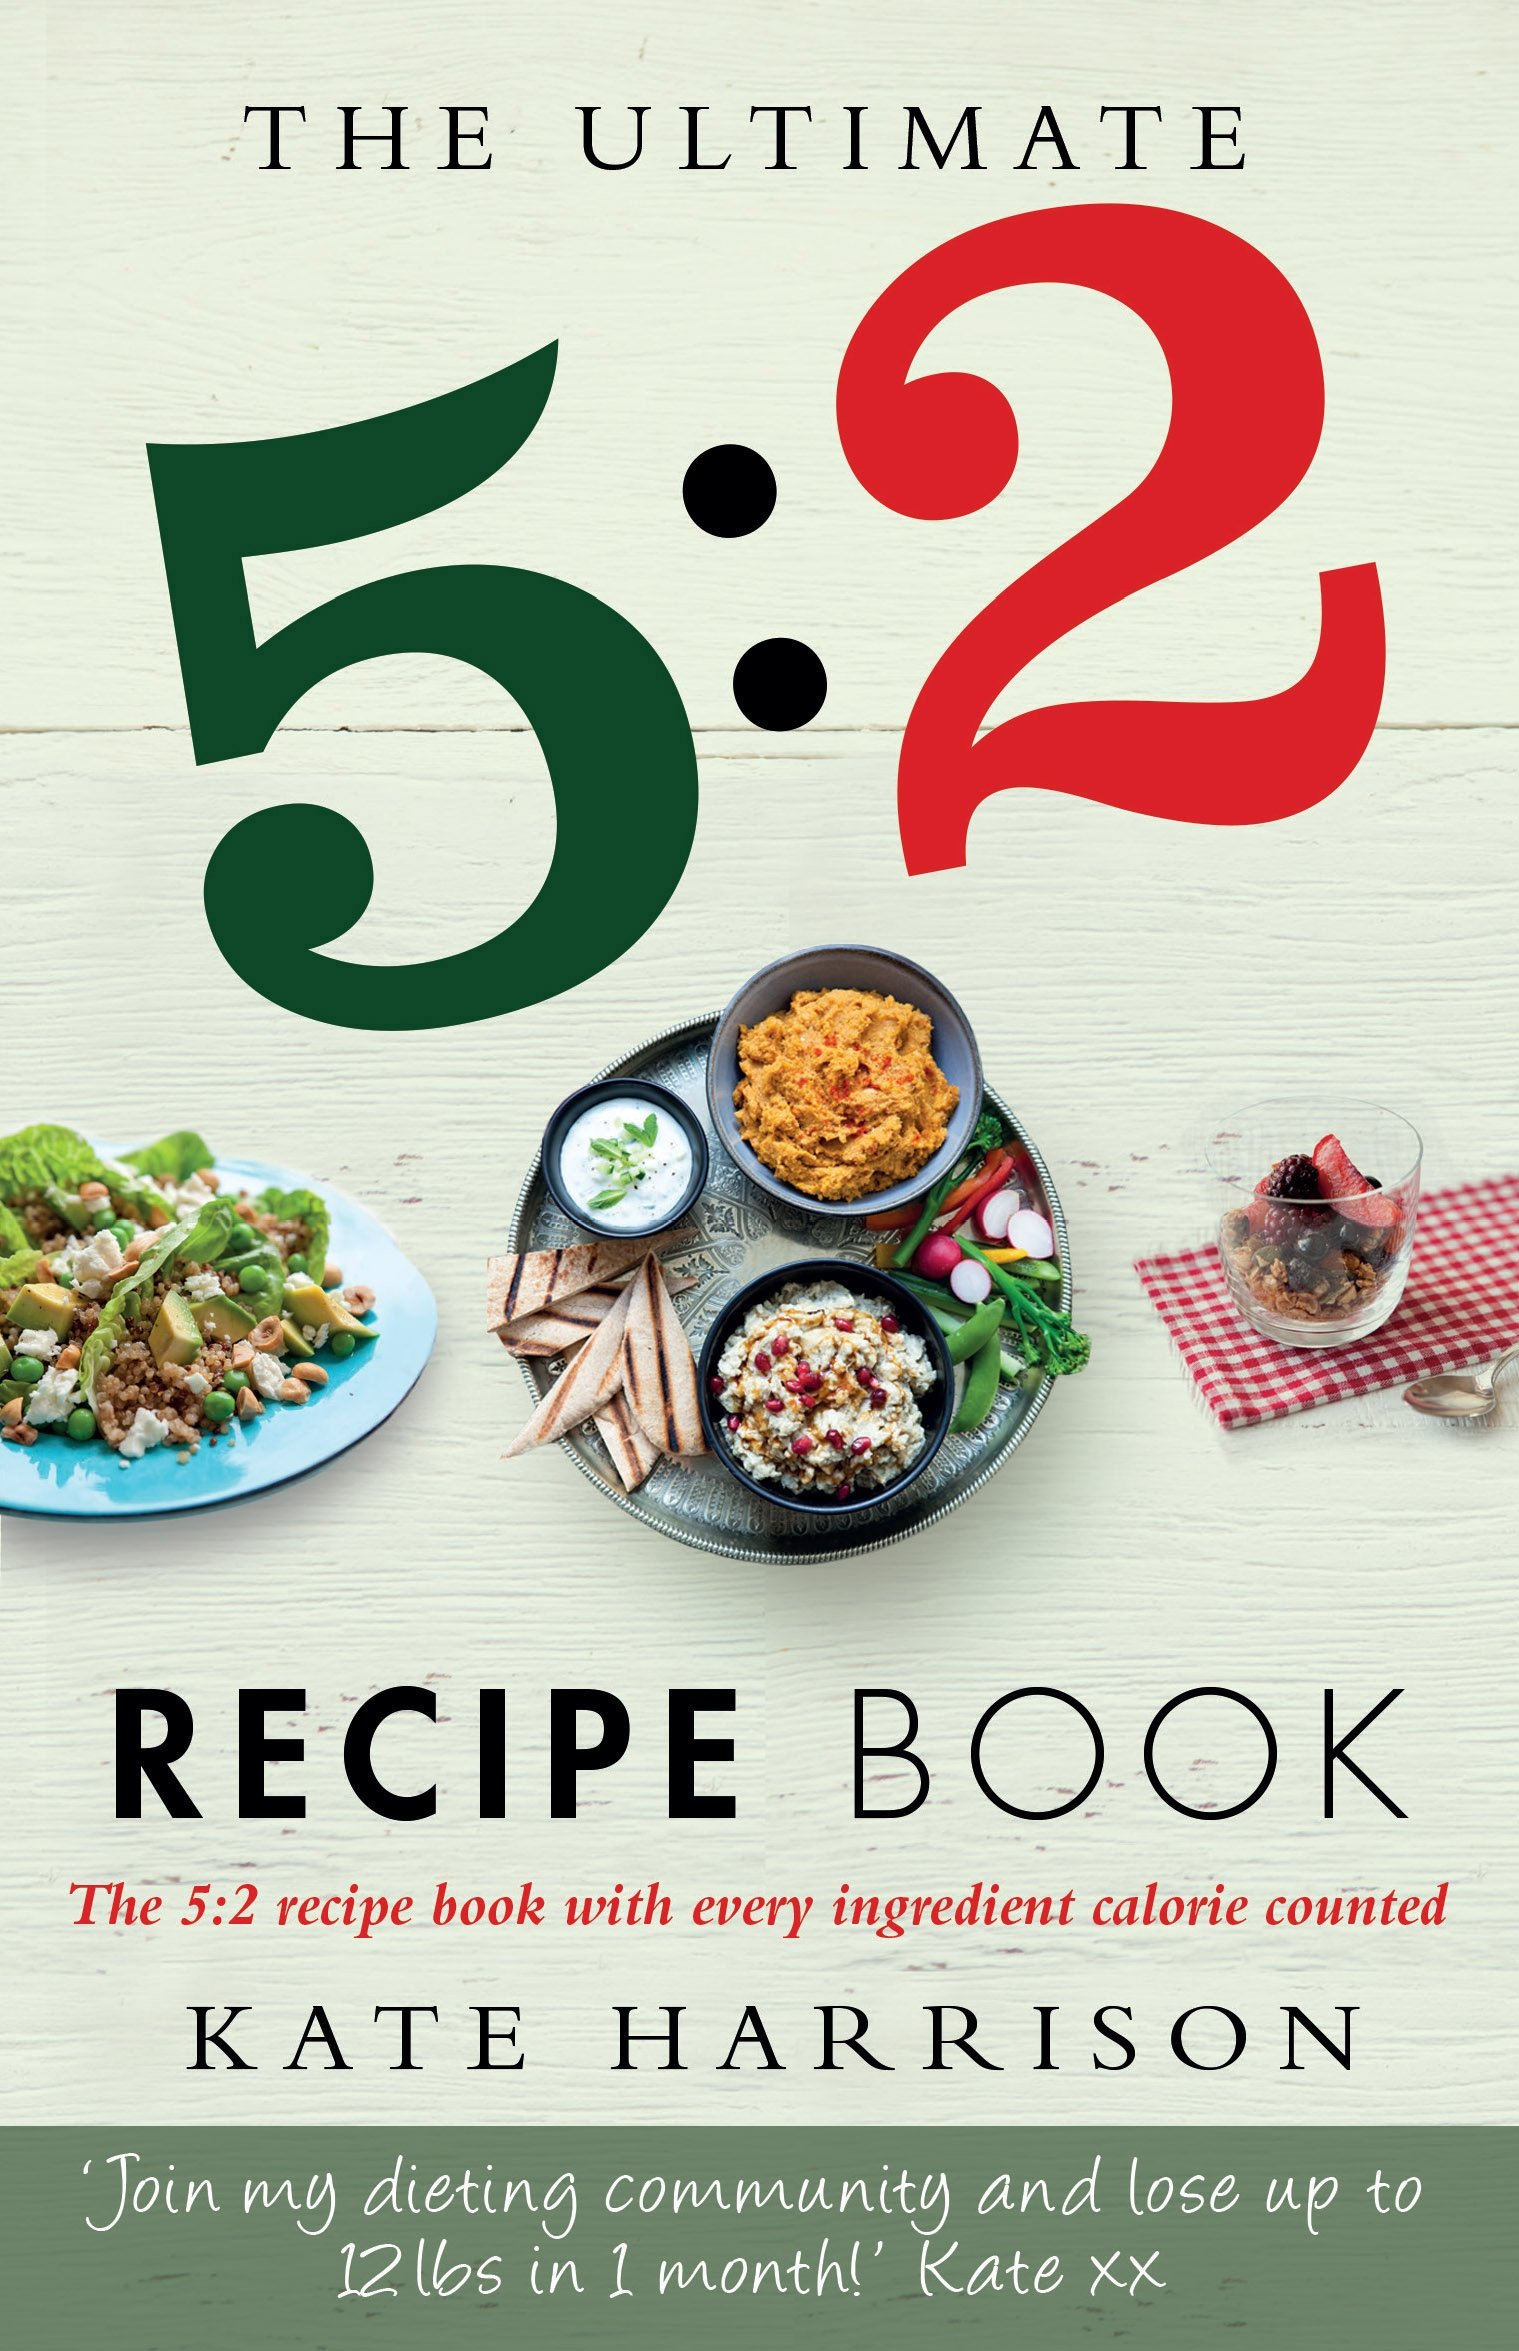 The Ultimate 5:2 Diet Cookbook (3 Books in 1) free download